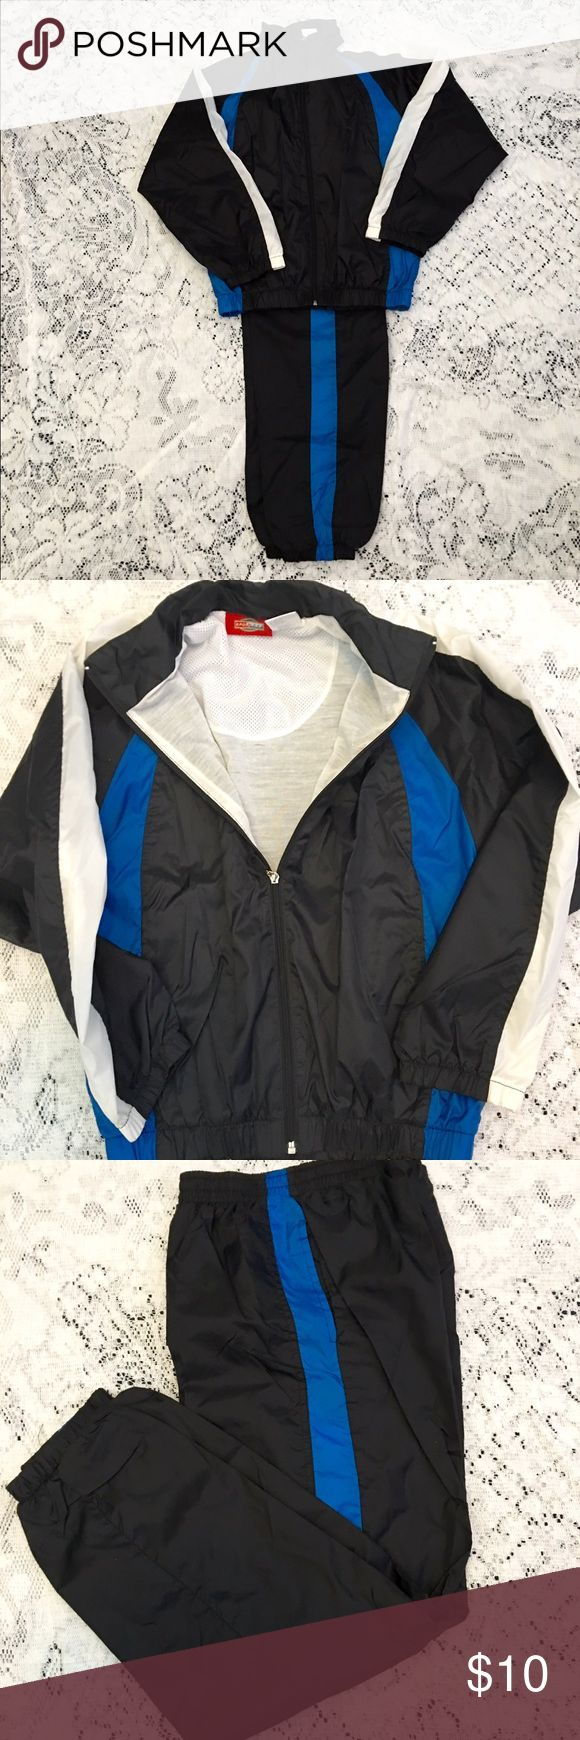 BOYS DIZE MEDIUM 10-12 WARM UPS LINED PANTS/COAT BOYS RAYON PANTS AND ZIPPER JACKET WSRM UP SUIT. BLACK BLUE & WHITE. LINED FOR WARMTH. AWESOME FOR THAT YOUNG ATHLETE IN YOUR FAMILY WORN MAYBE ONCE SELLING FOR FRIEND Sport Trax Matching Sets